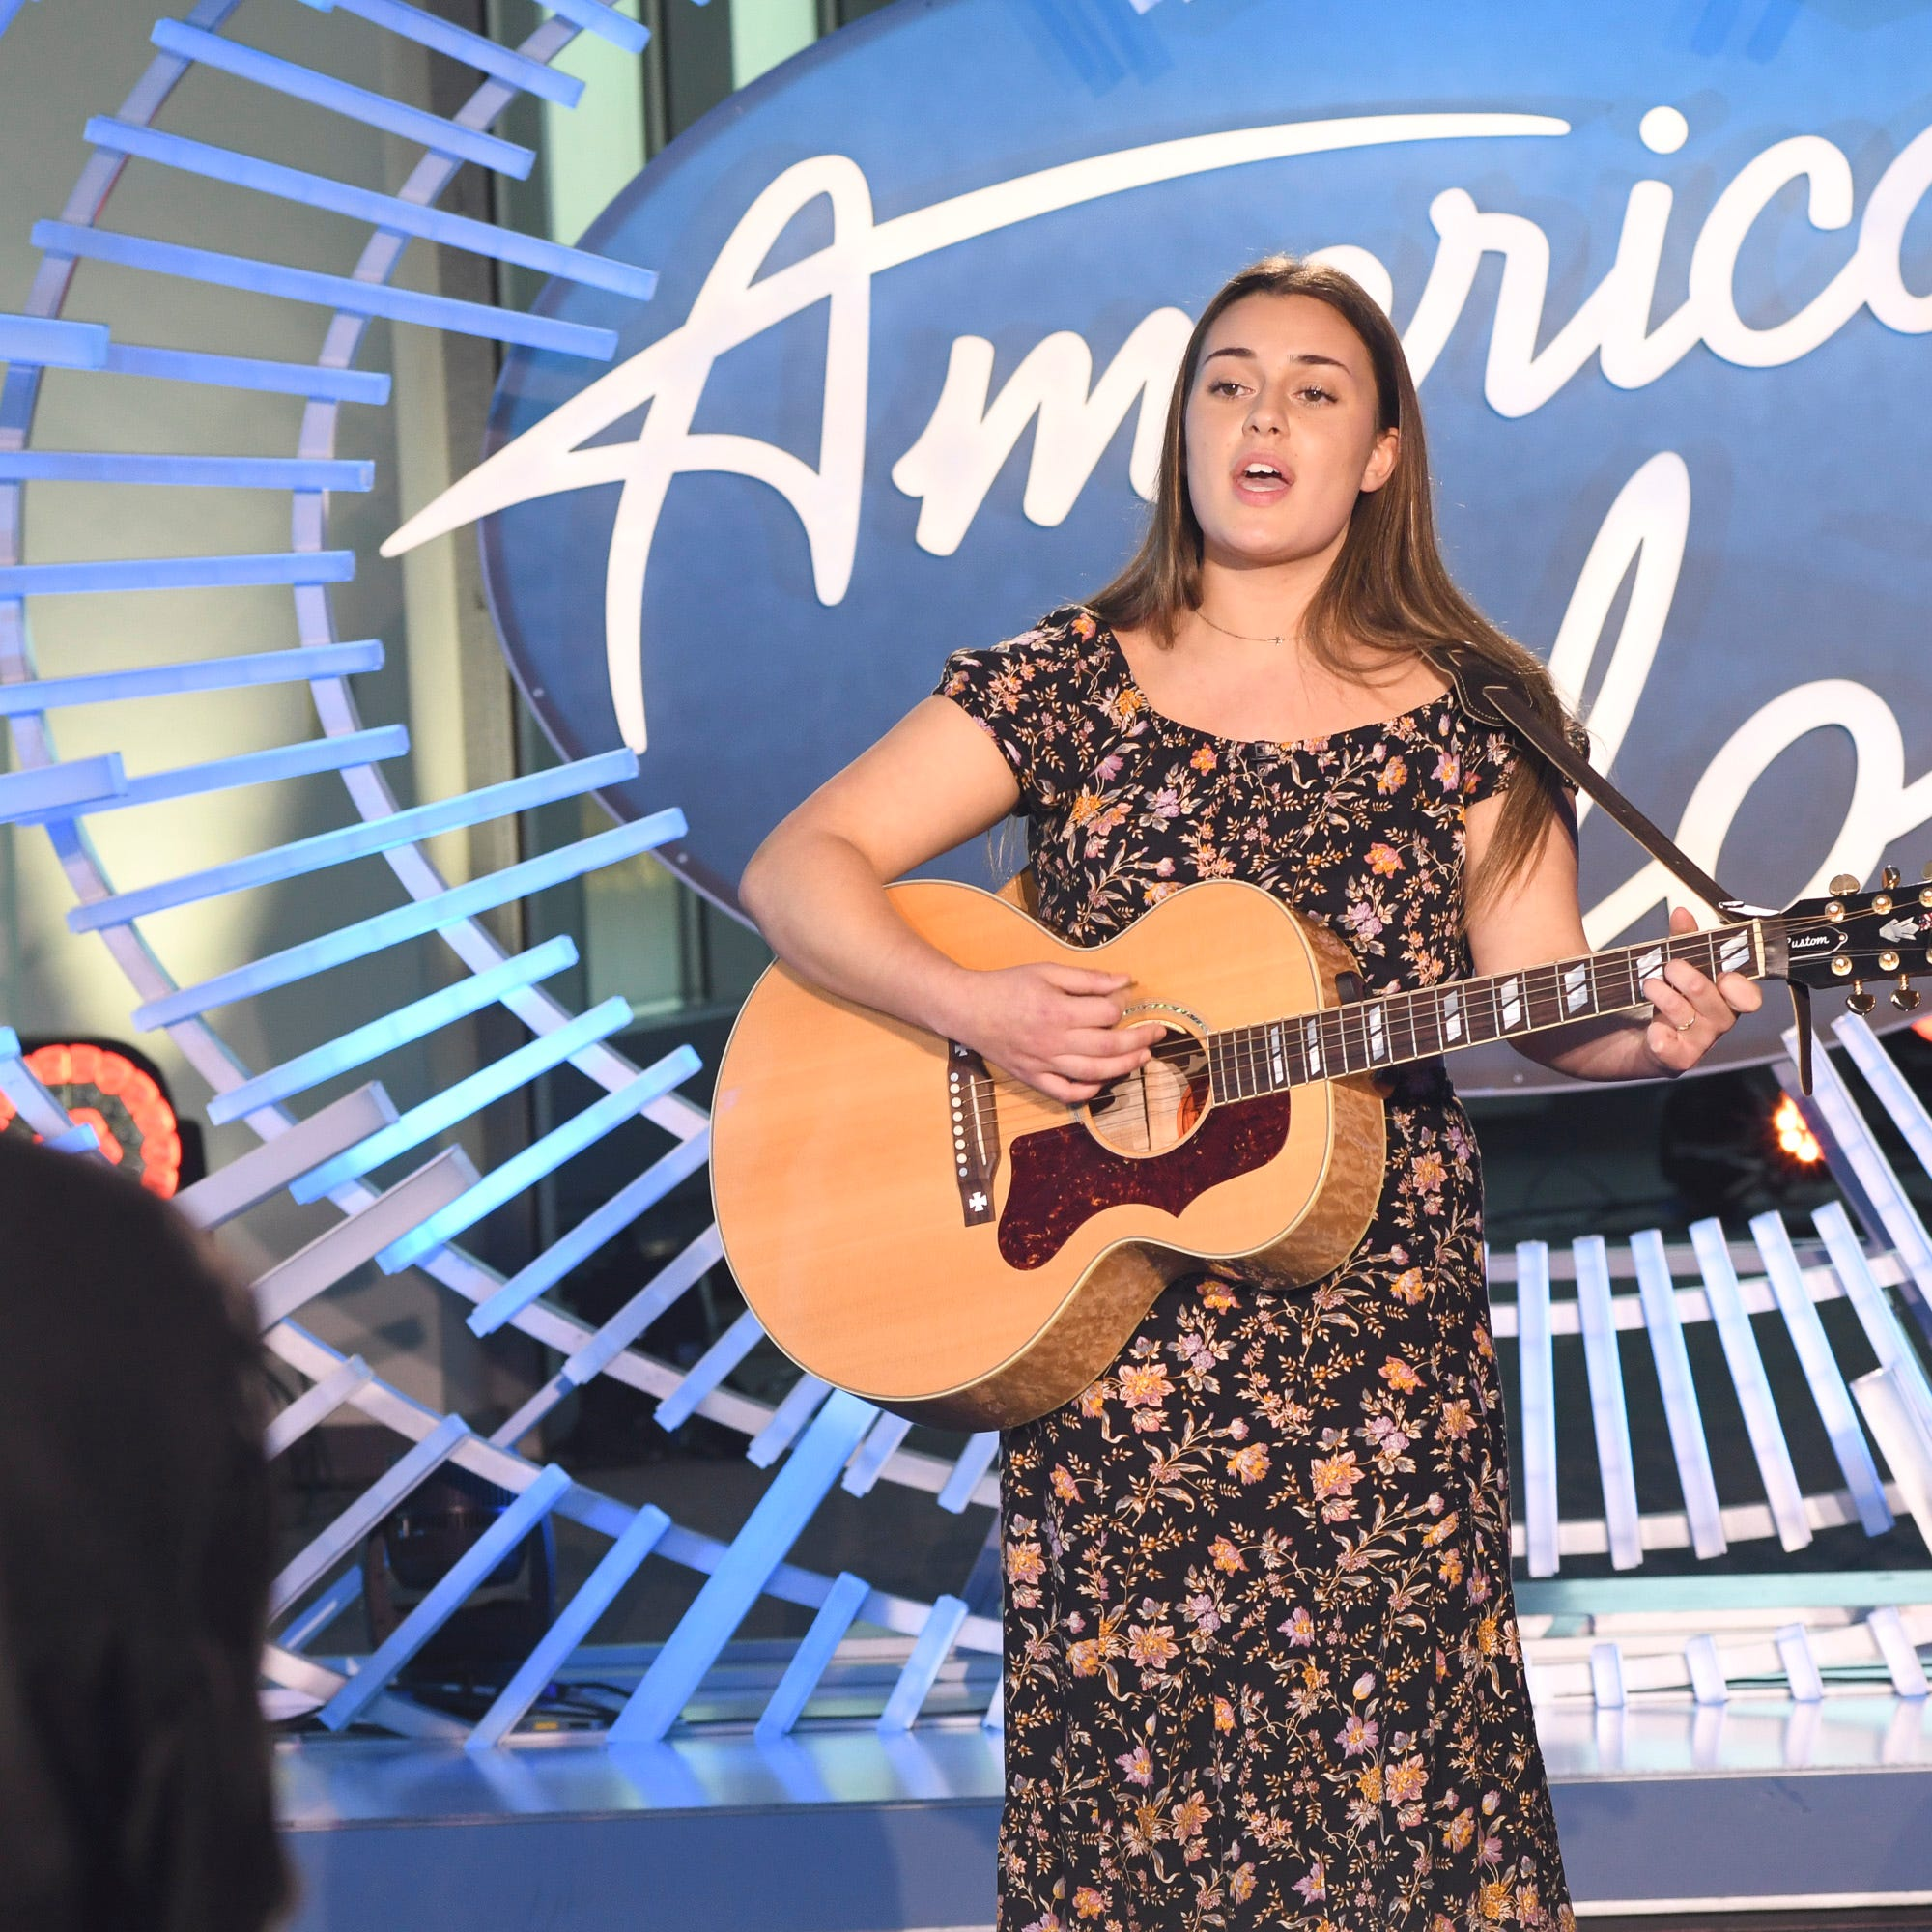 American Idol: Sydney Sherwood of Marlboro, other Jersey contestants, exit the competition